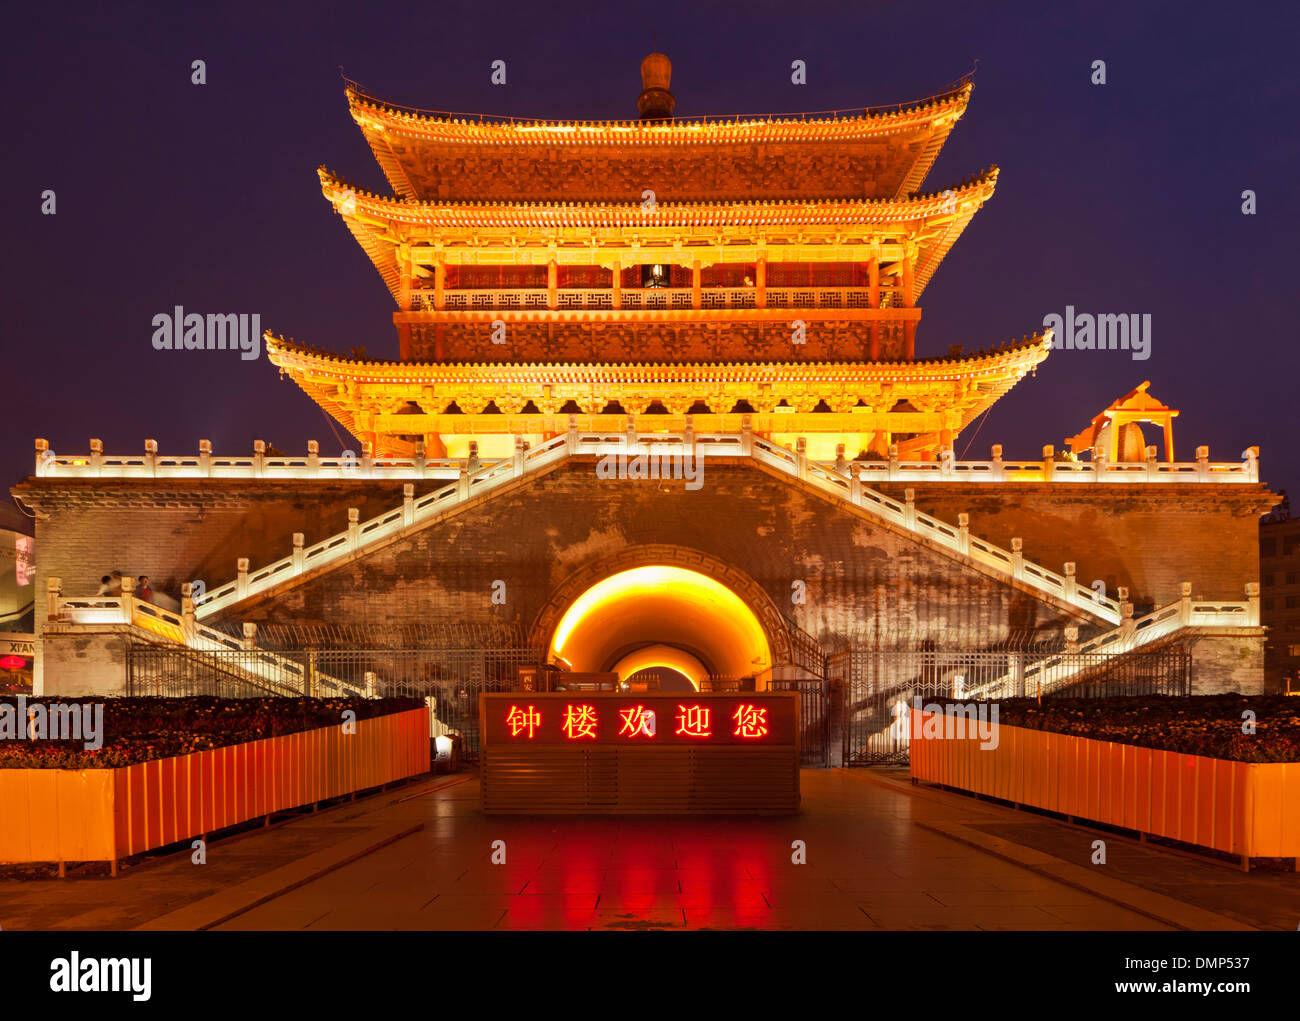 Bell tower at Night, Xian, Shaanxi Province, PRC, People's Republic of China, Asia - Stock Image